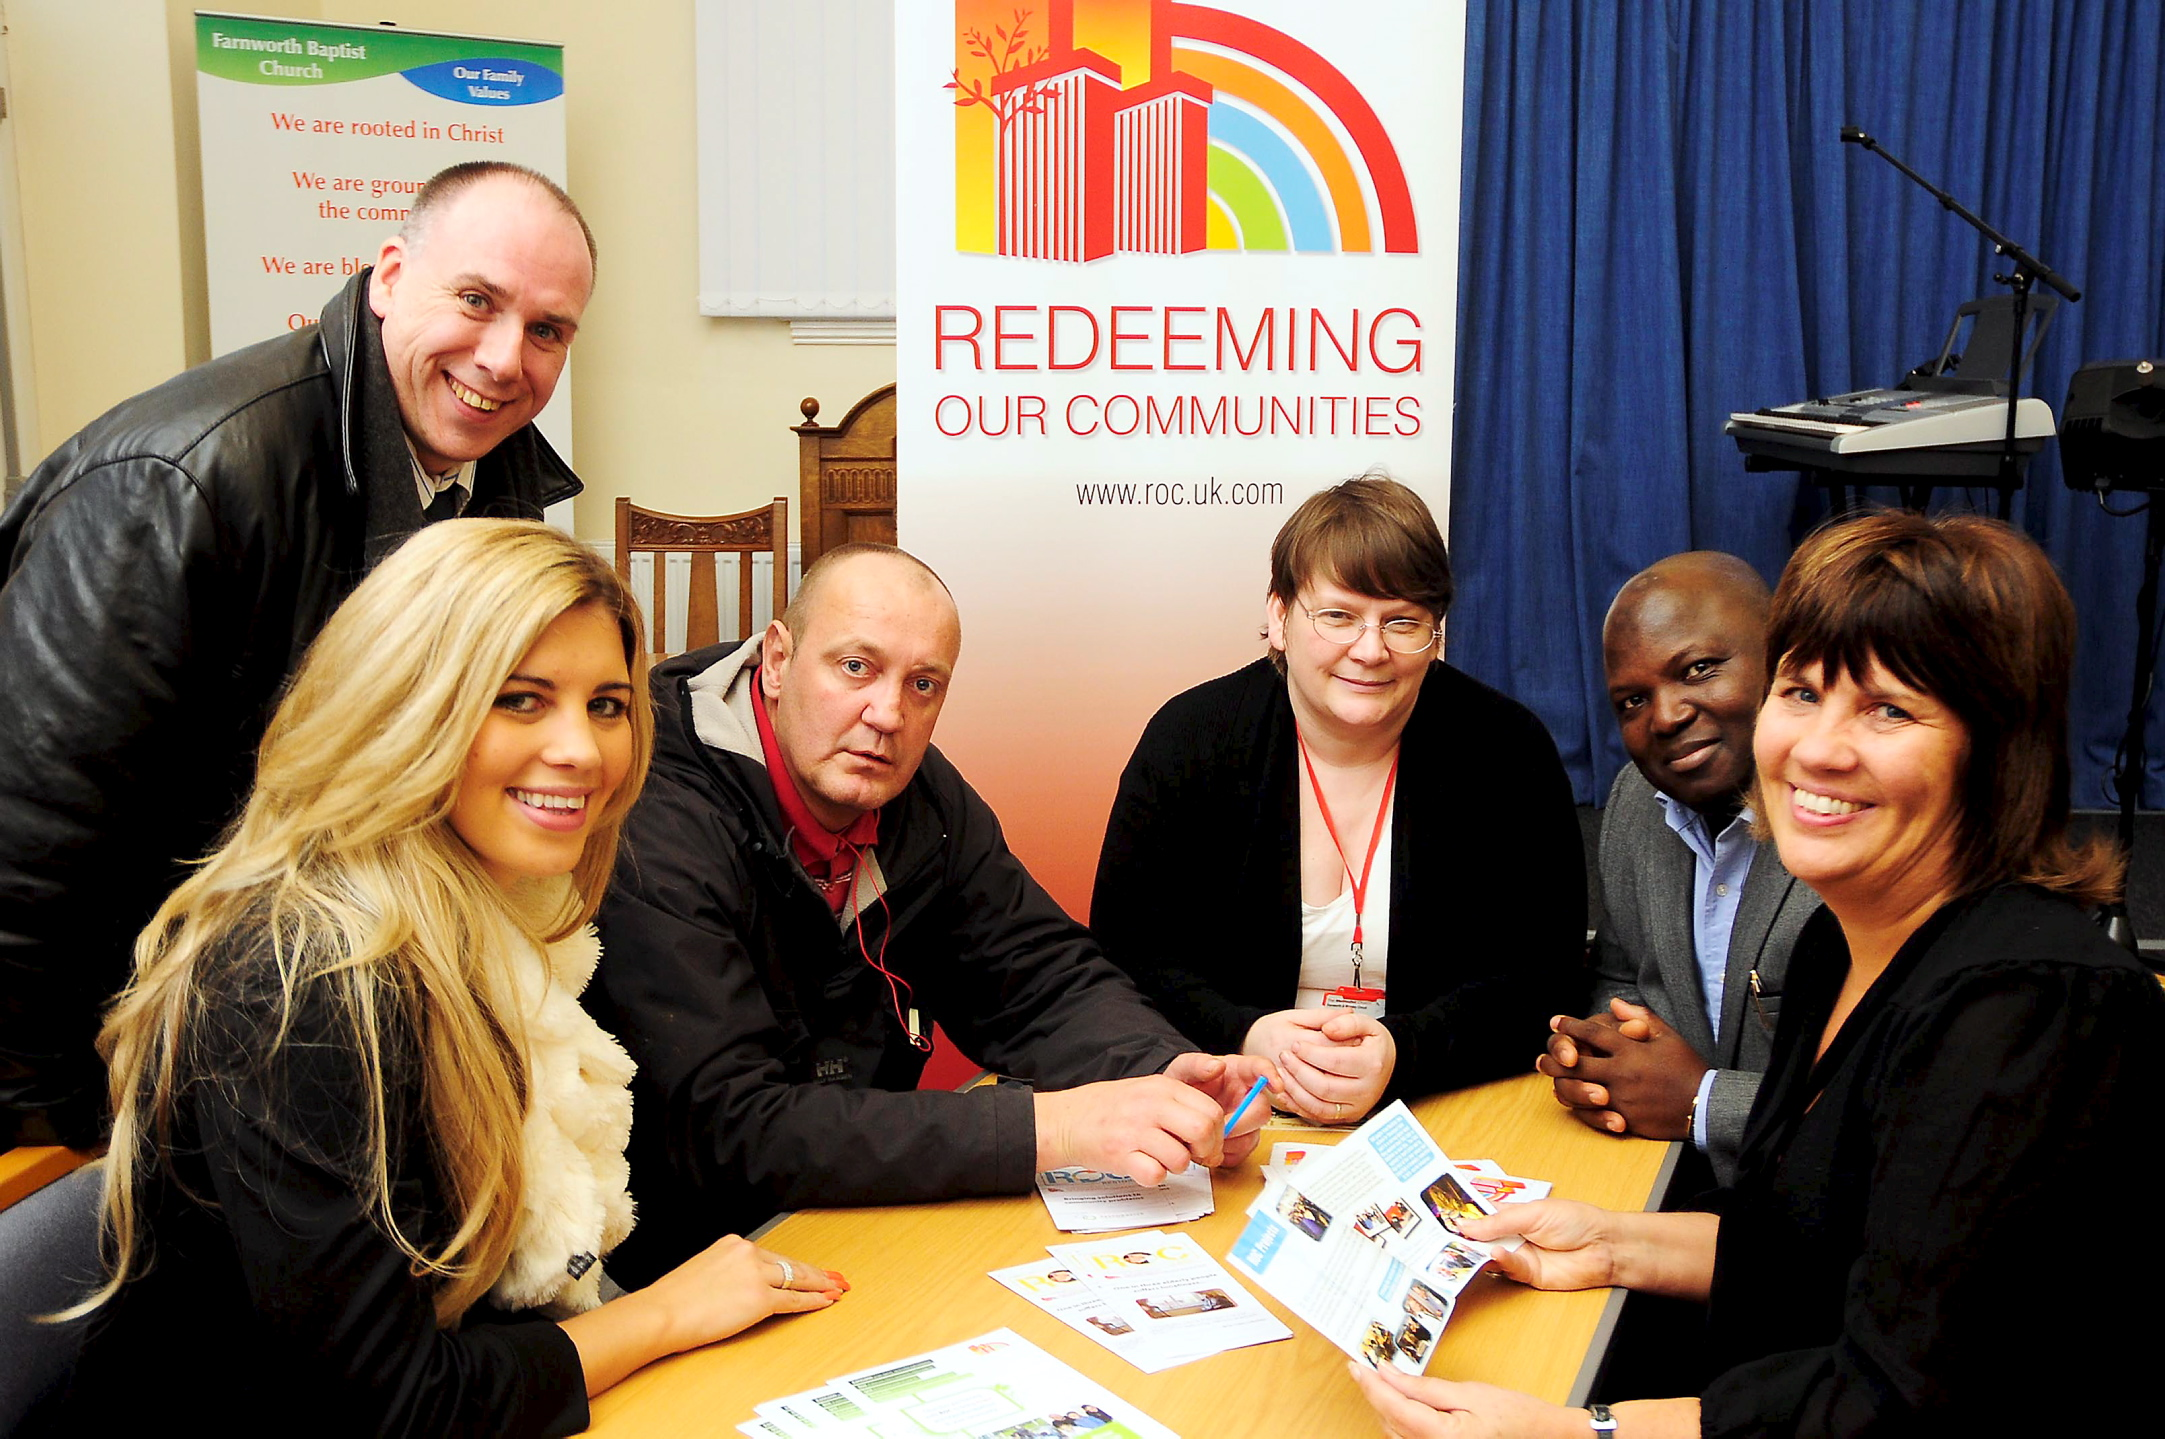 Meeting at Farnworth Baptist Church to try and set up another ROC are, from left, ROC National Development Manager Rebecca Green, Paul Davies from Sorts Village Church, Leigh, Neil Blower, Sally Cooper from Farnworth and Worsley Methodist Circuit, Adewale